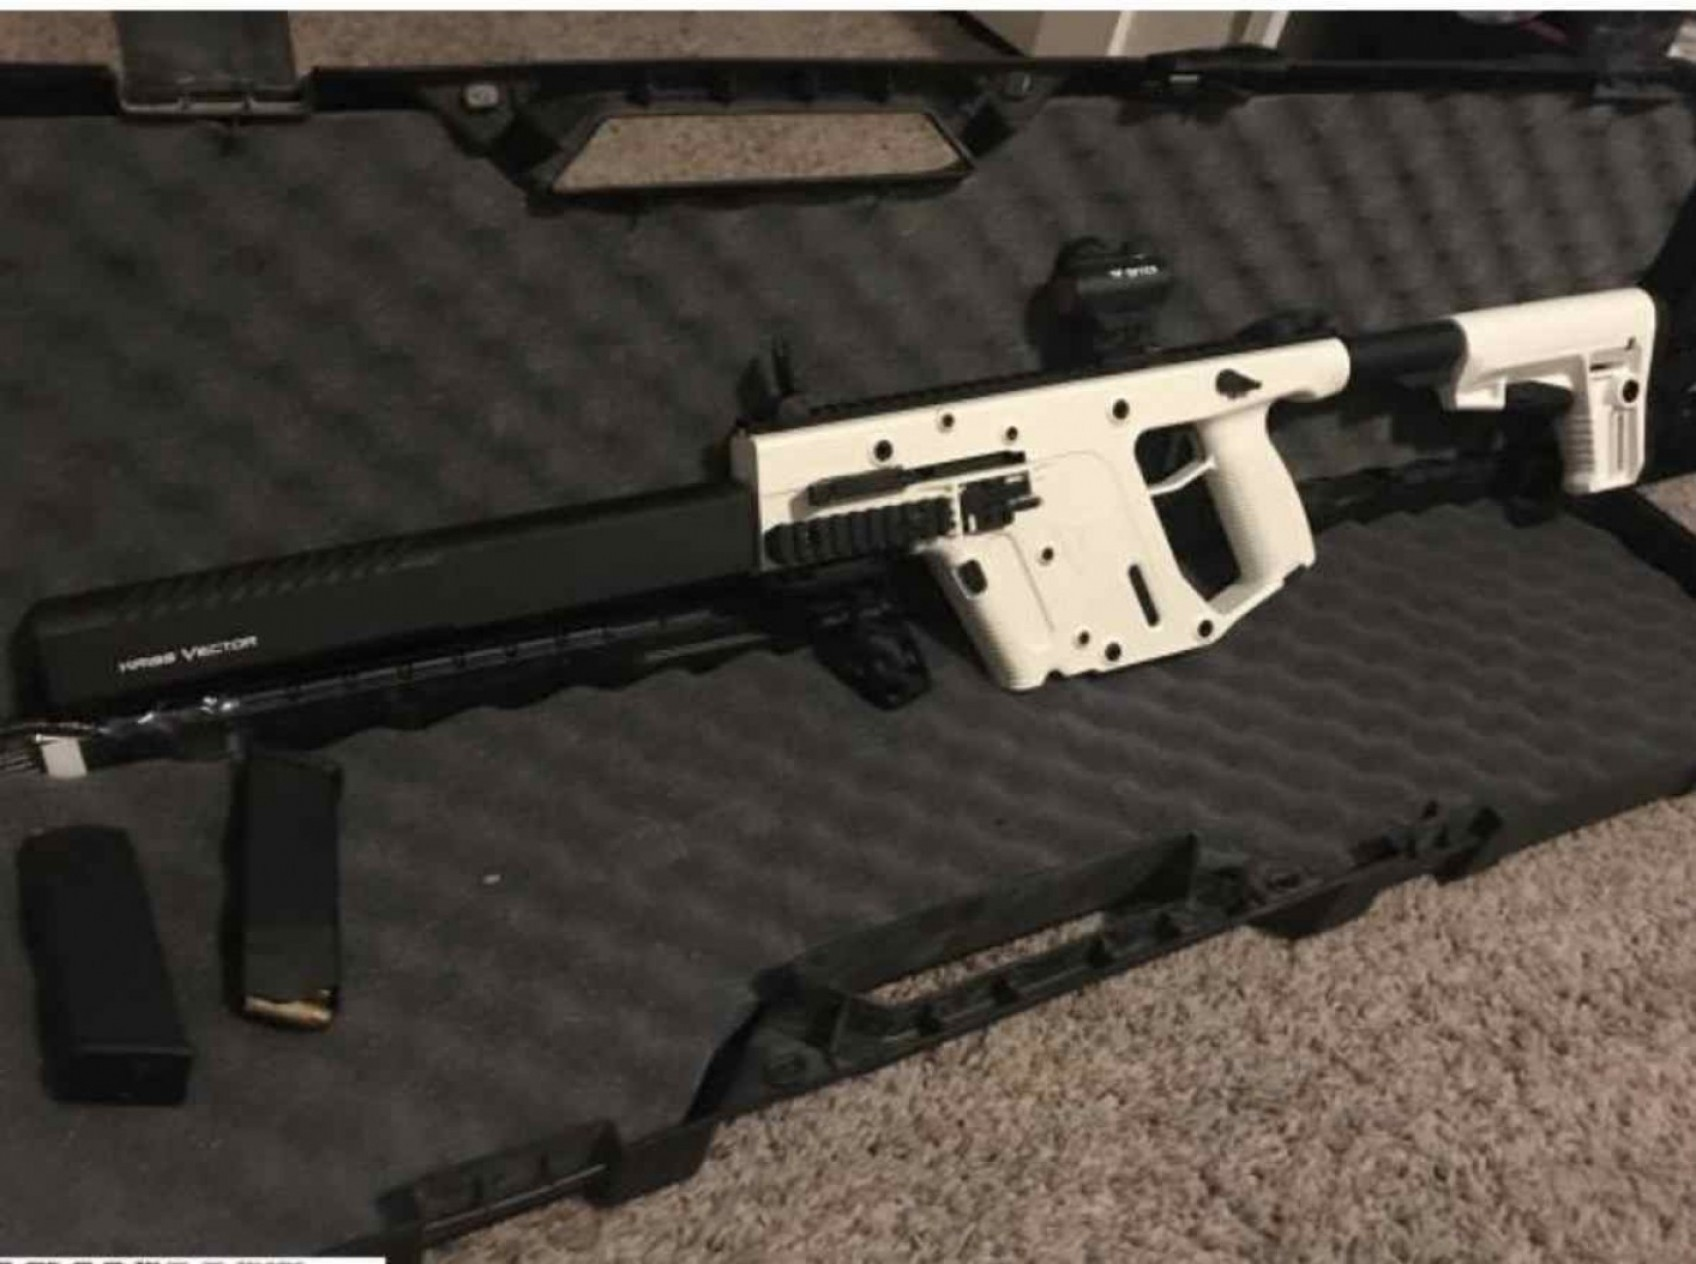 Kriss Vector Pistol Genii: Kriss Vector Gen Mm Alpine White Like New